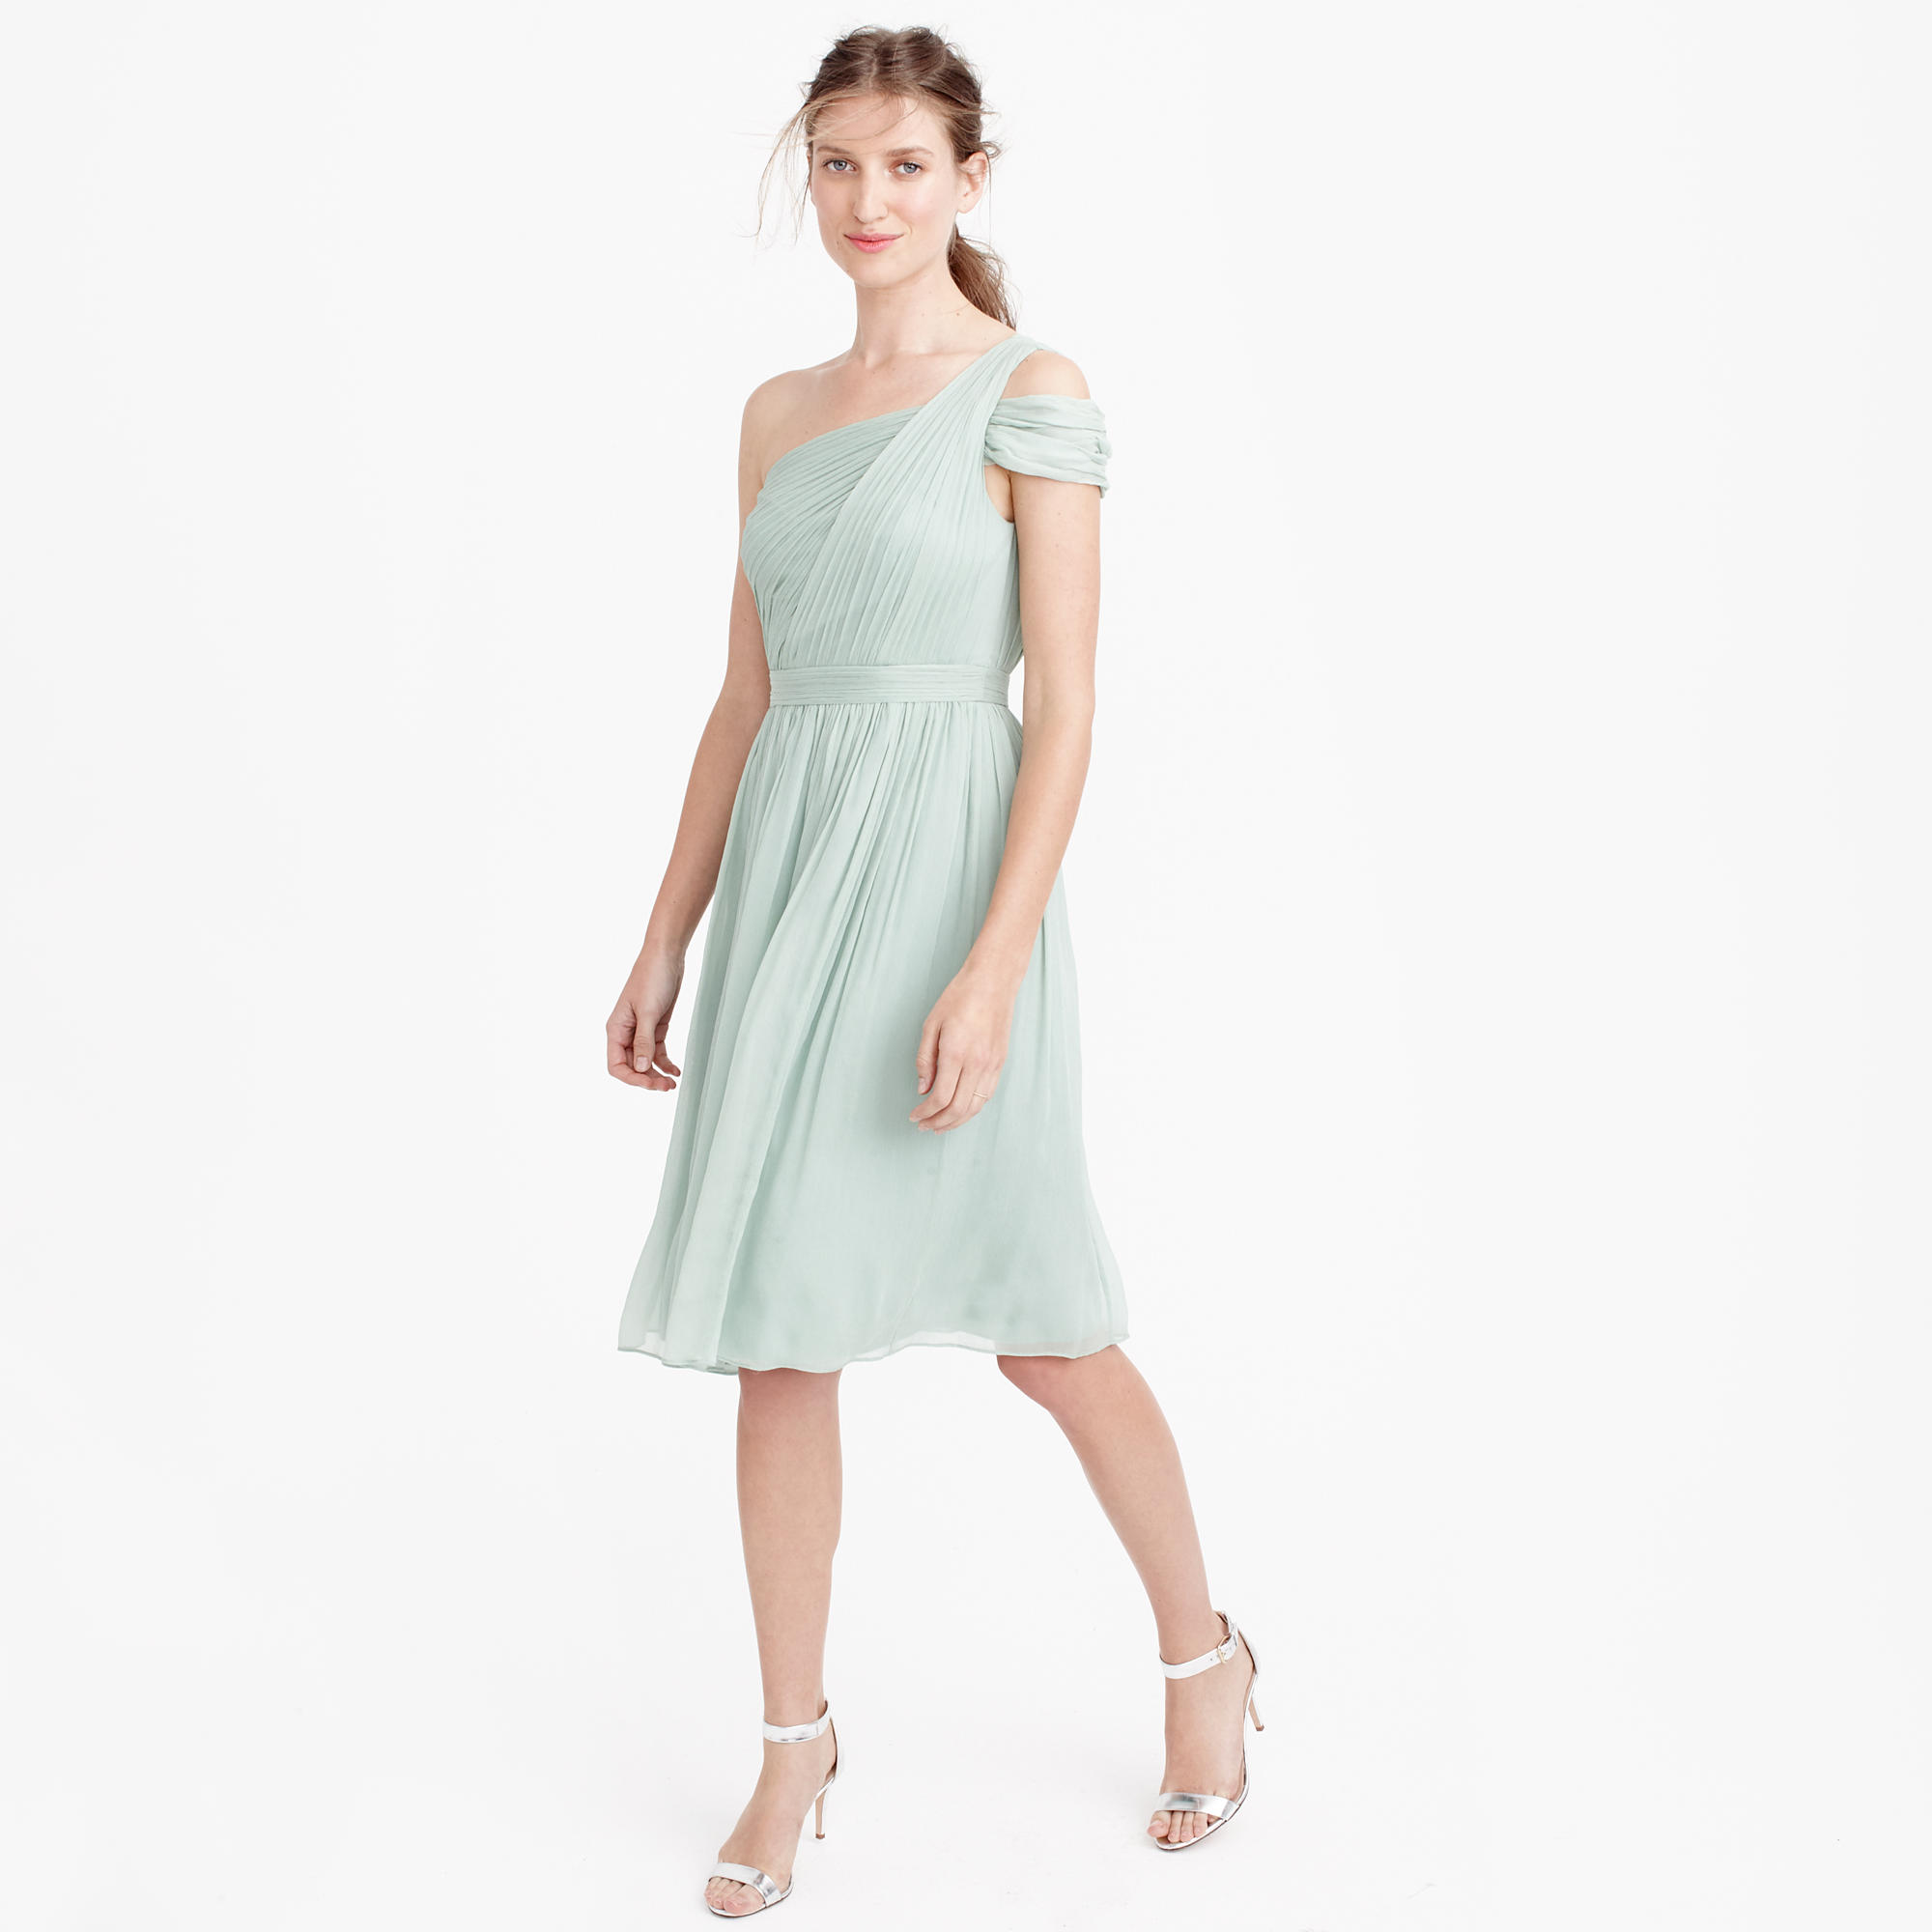 20 next level bridesmaid dresses fashion girls can get behind pastel ombrellifo Choice Image